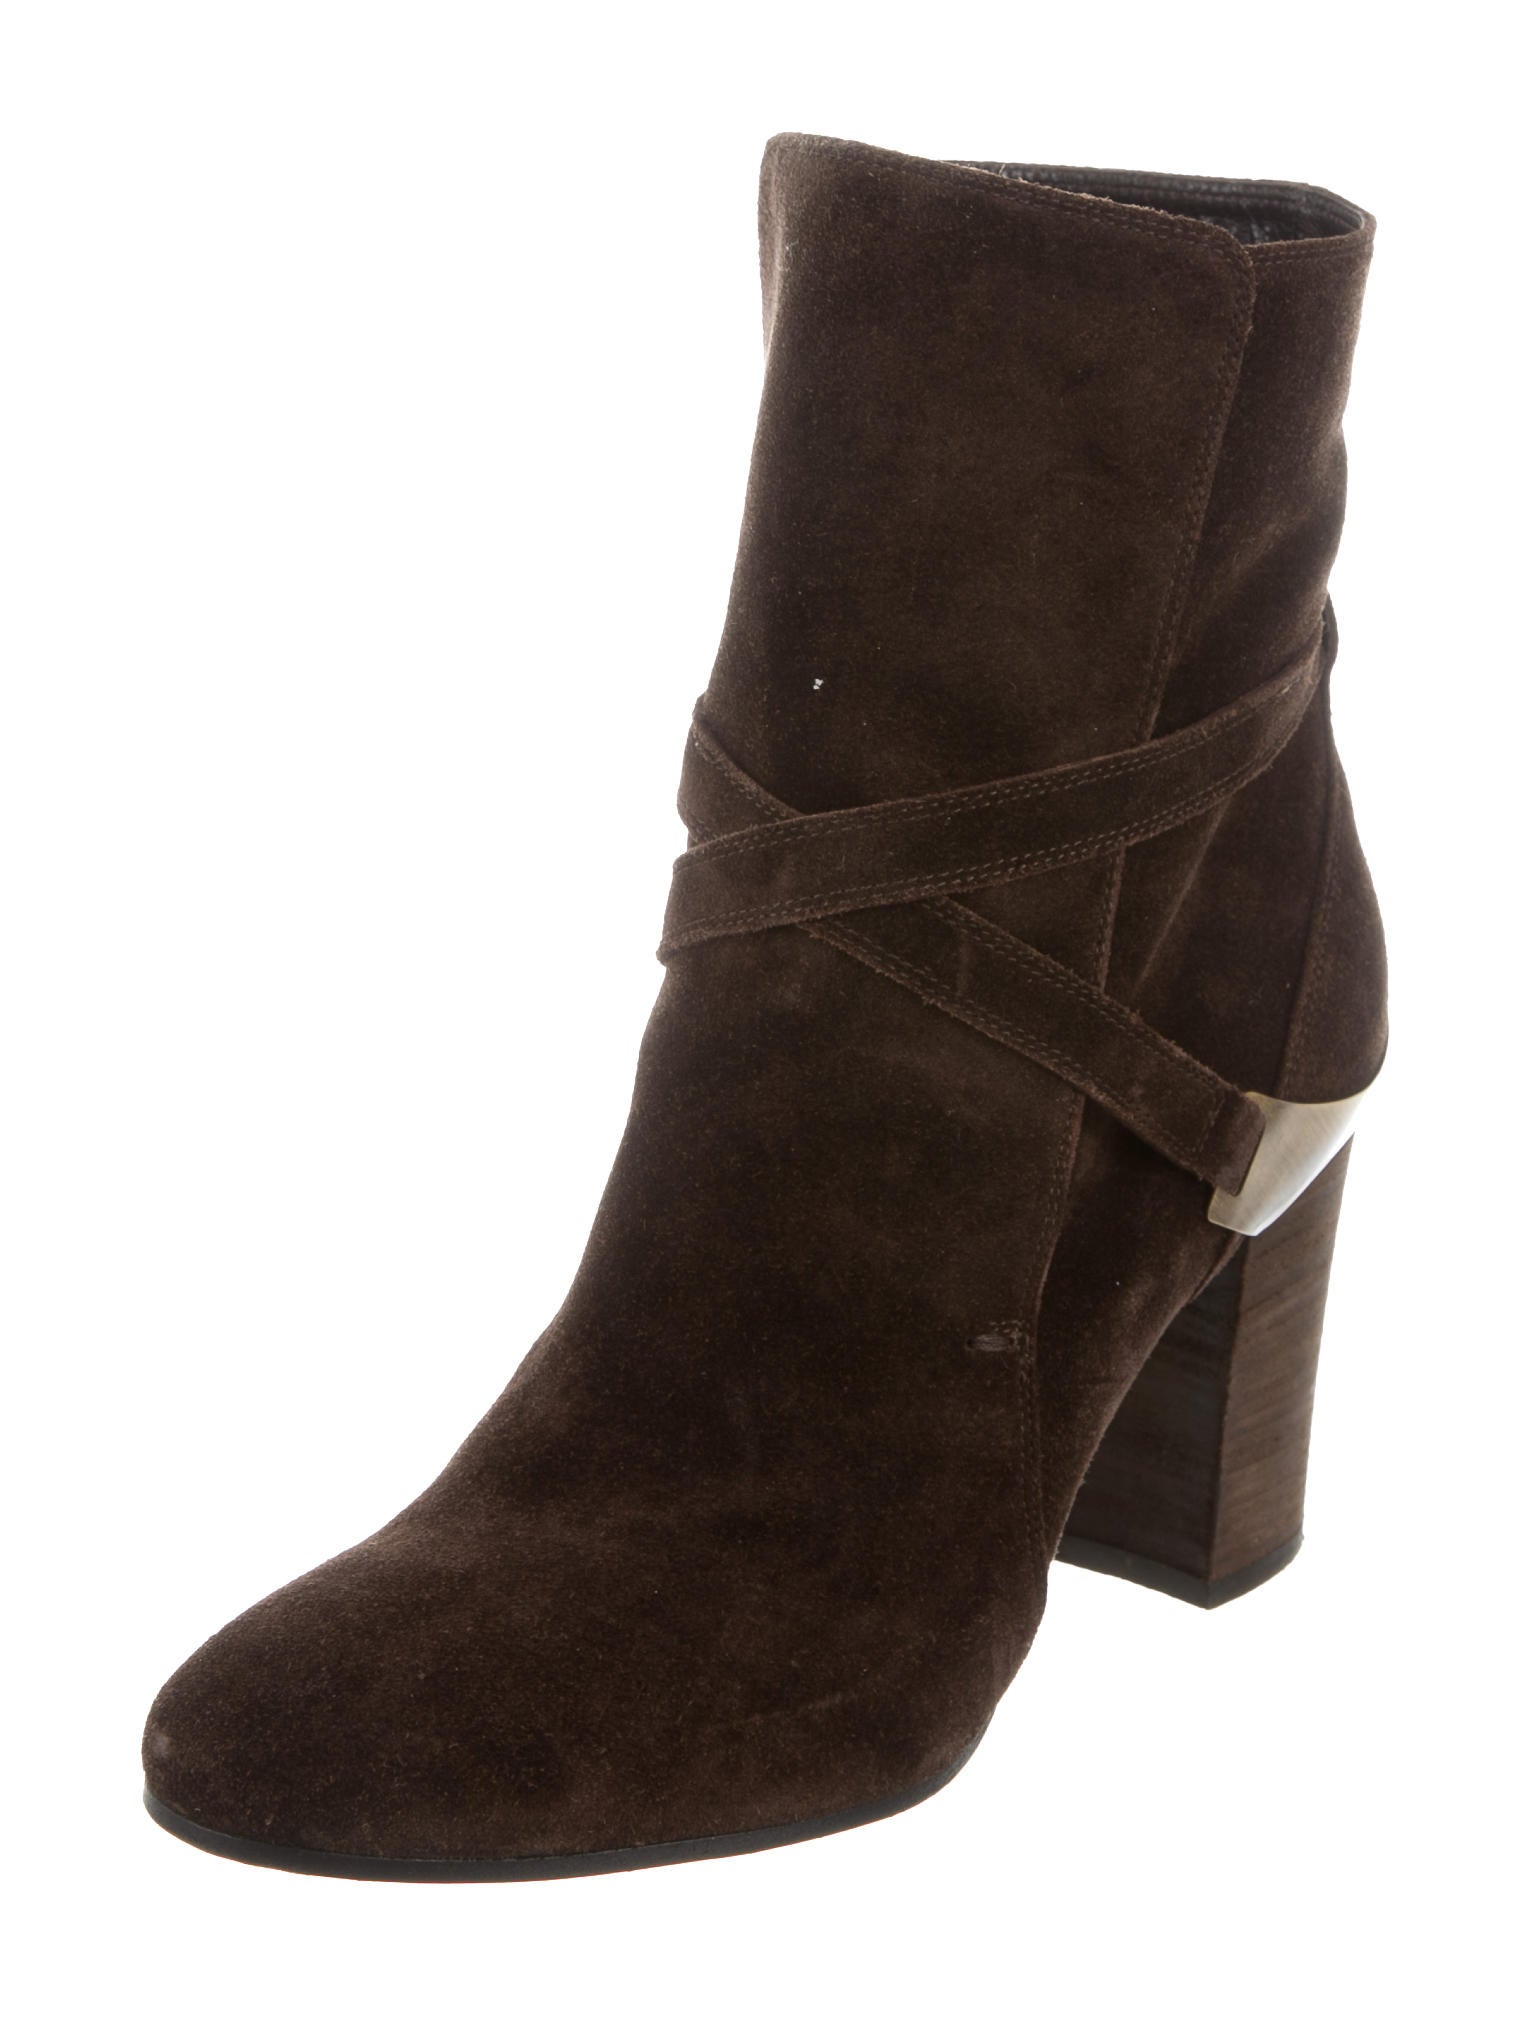 lanvin suede ankle boots shoes lan54067 the realreal